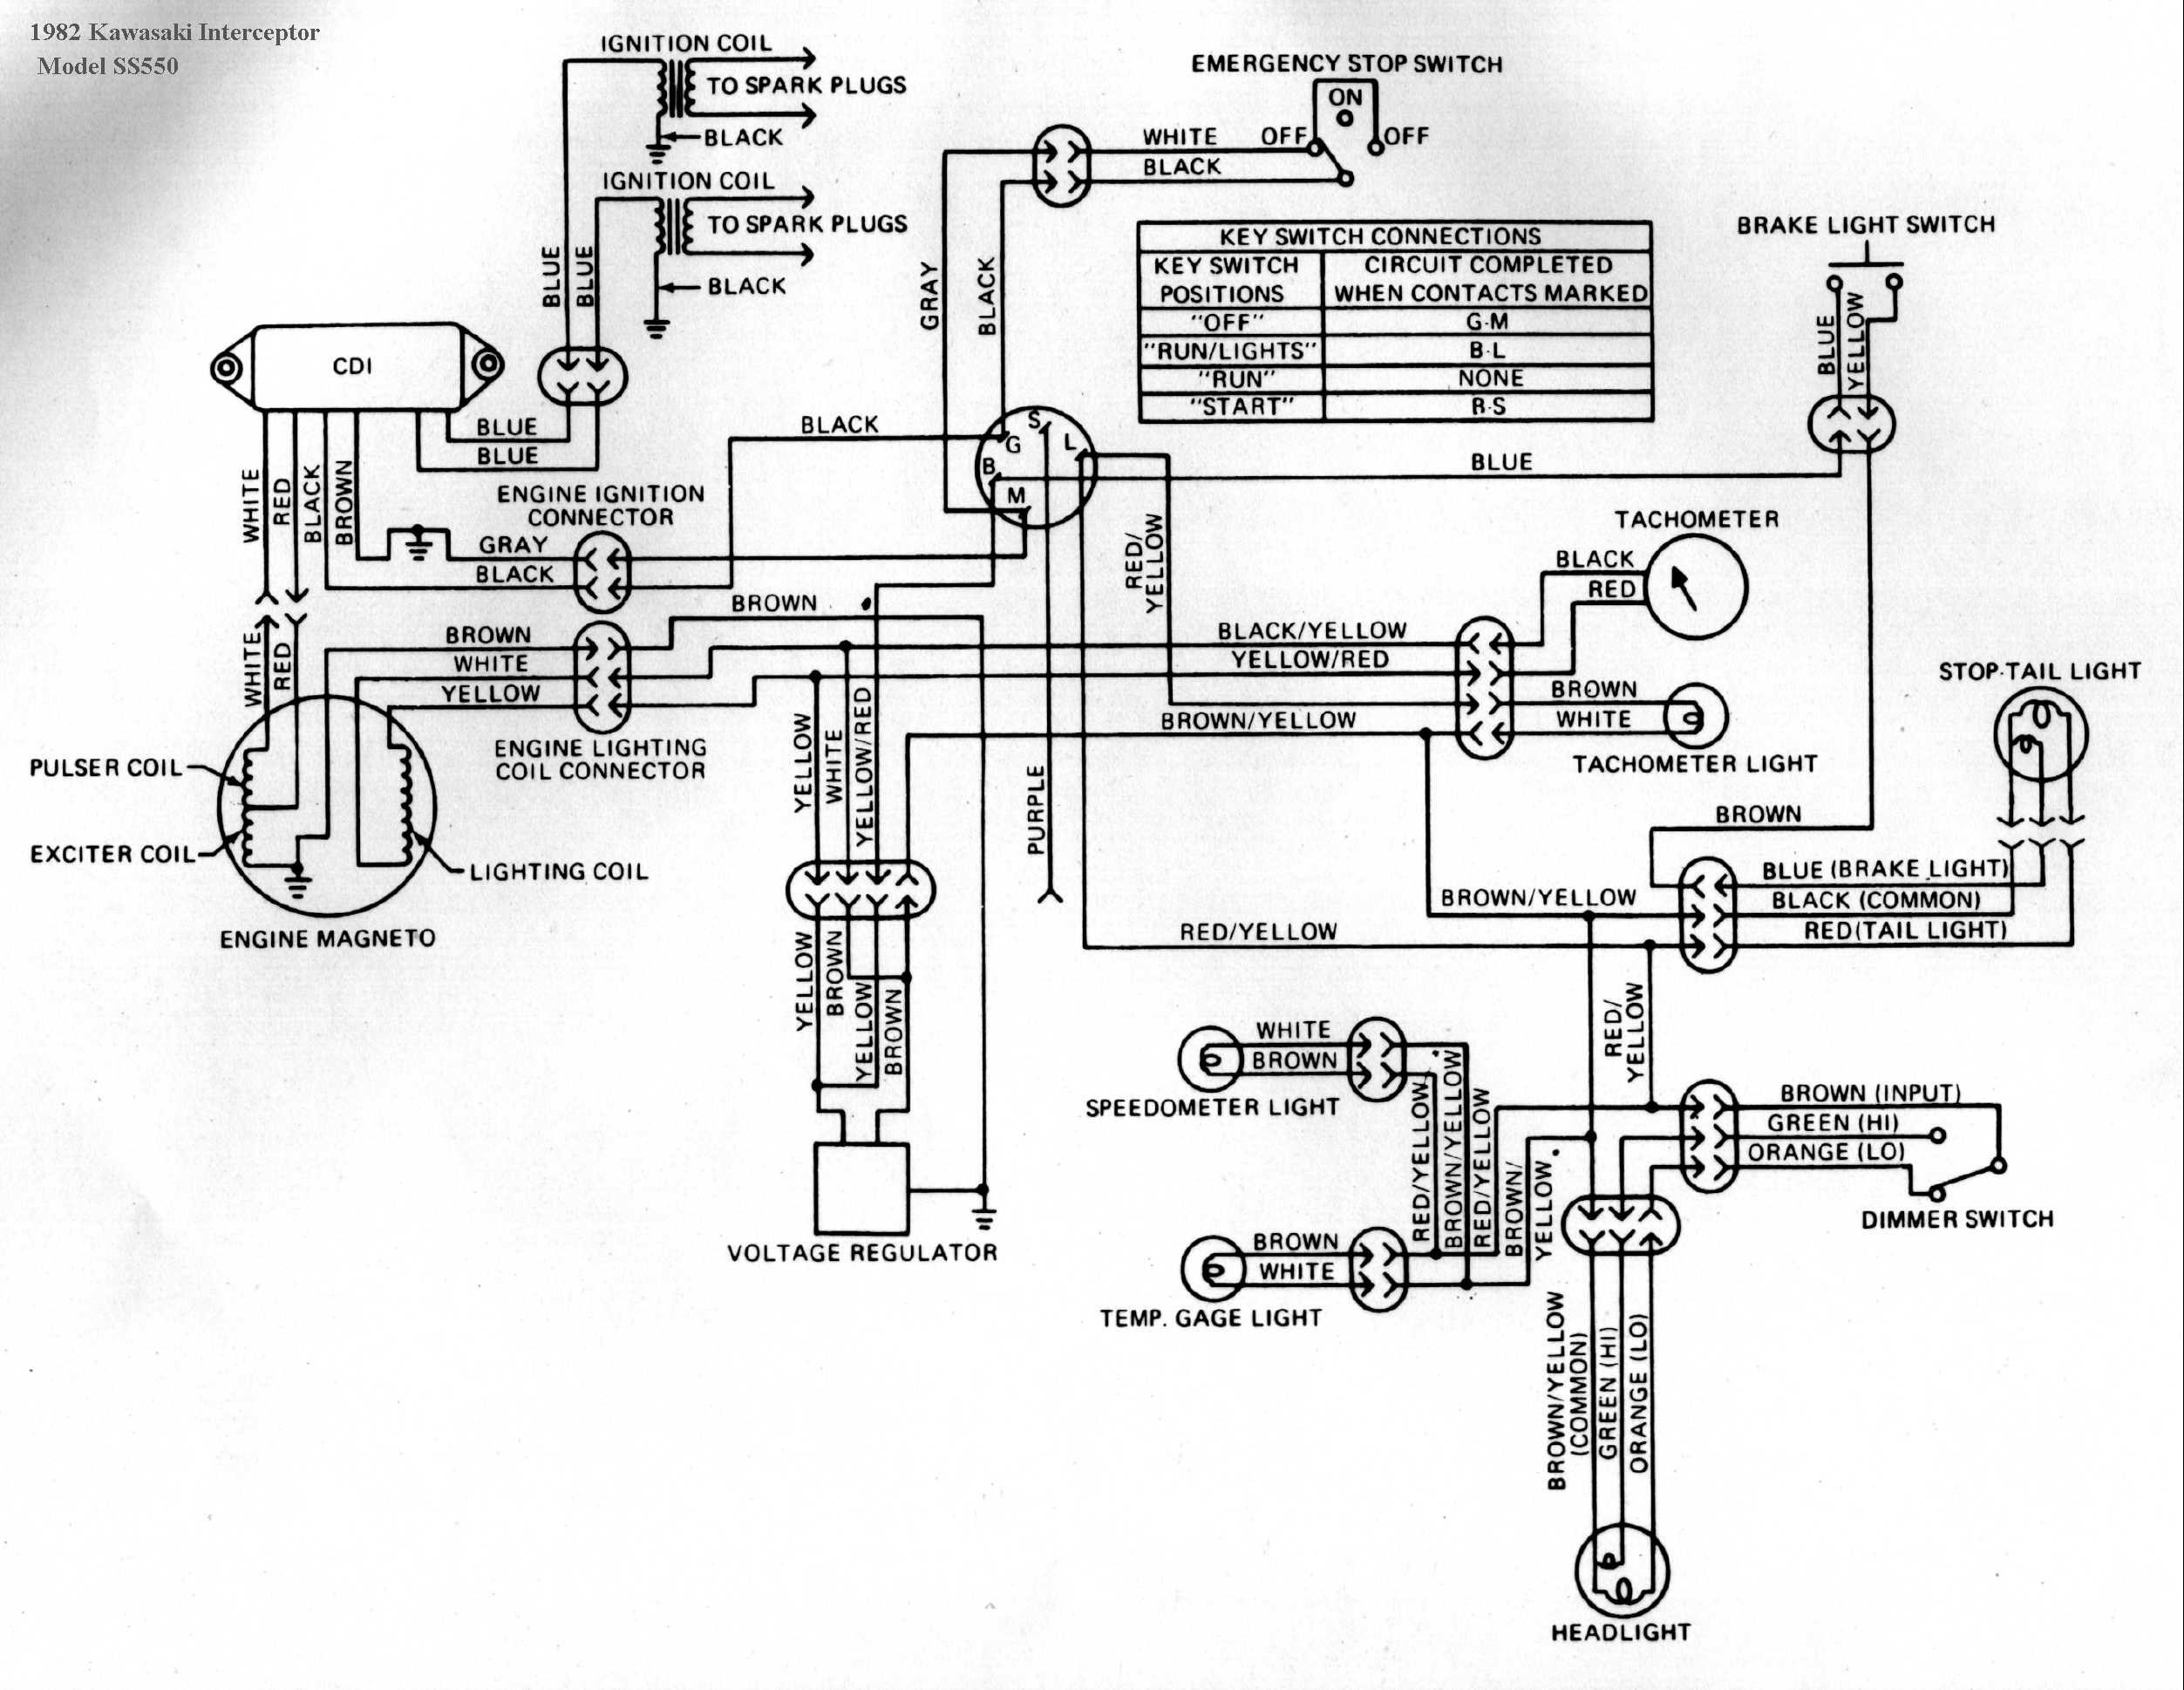 ss550 kawasaki snowmobile wiring diagrams wiring diagram ski doo snowmobile at creativeand.co